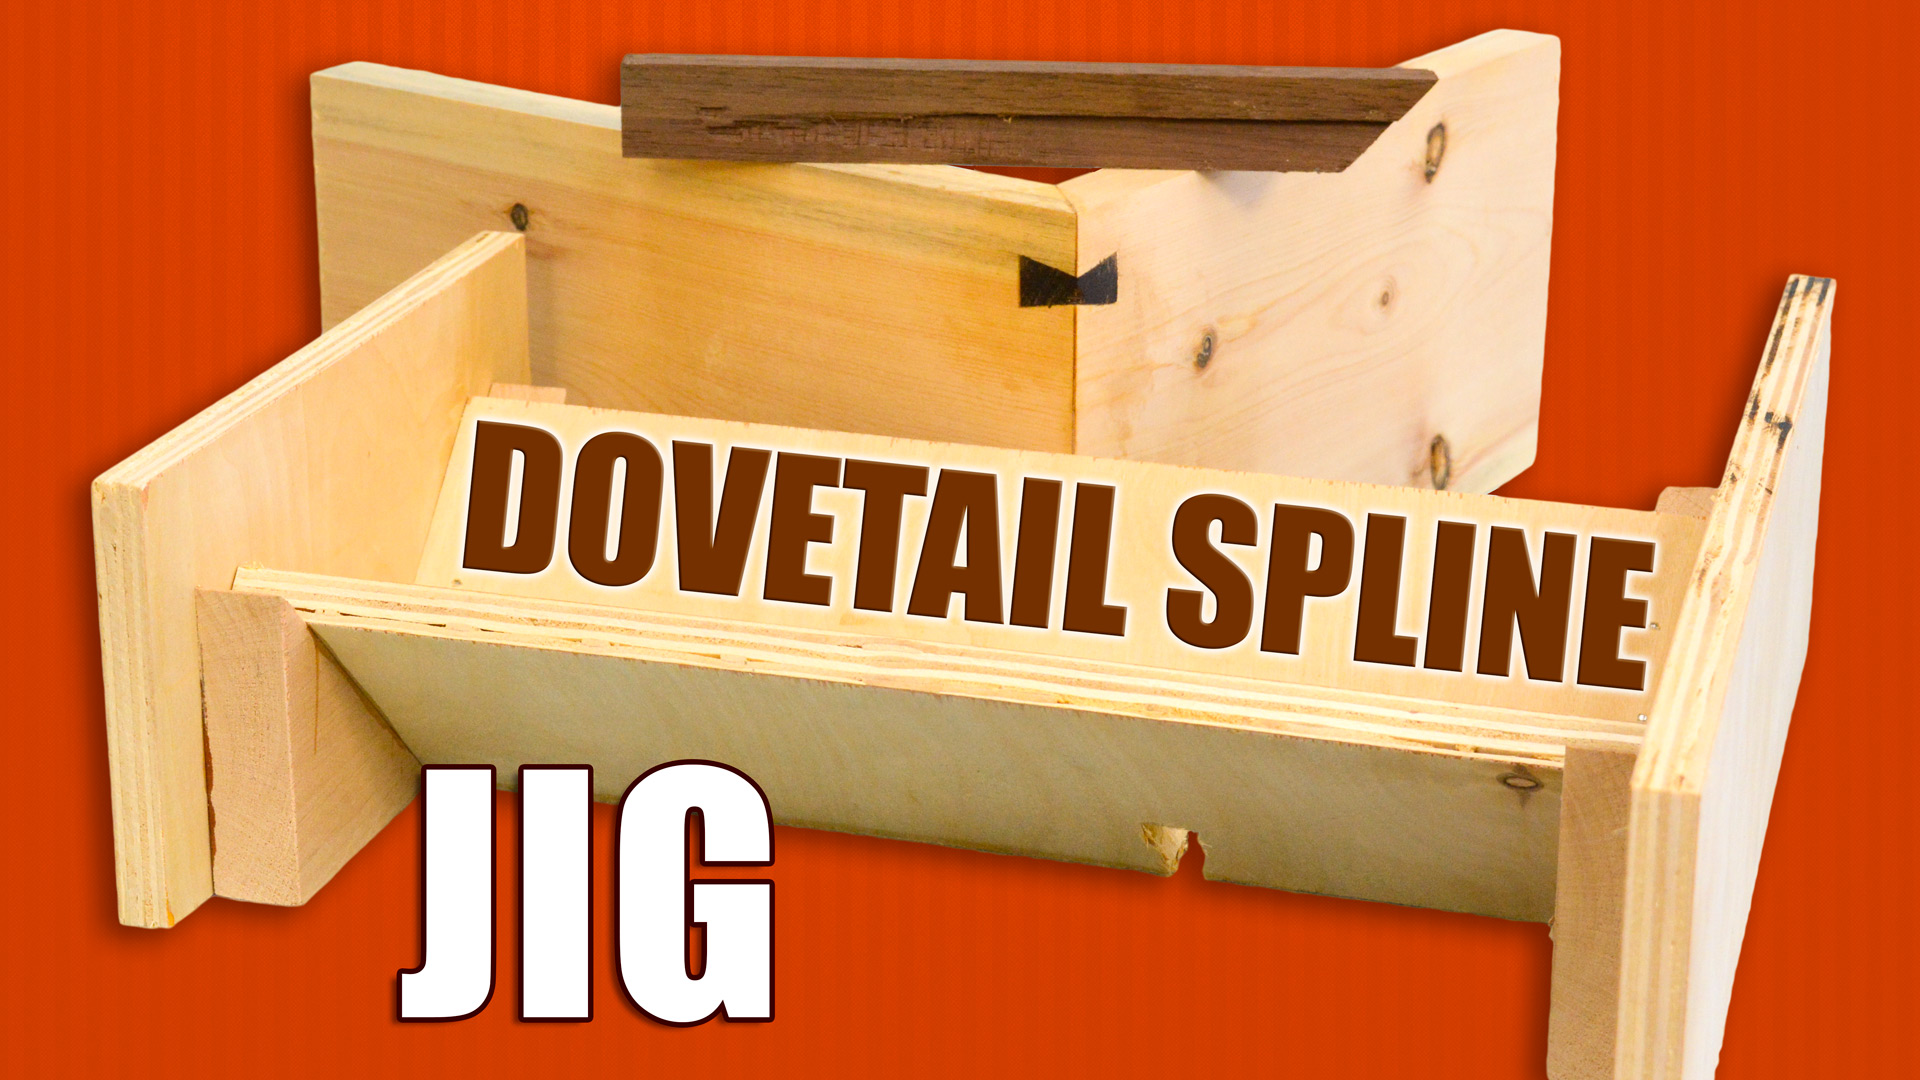 Dovetail Spline